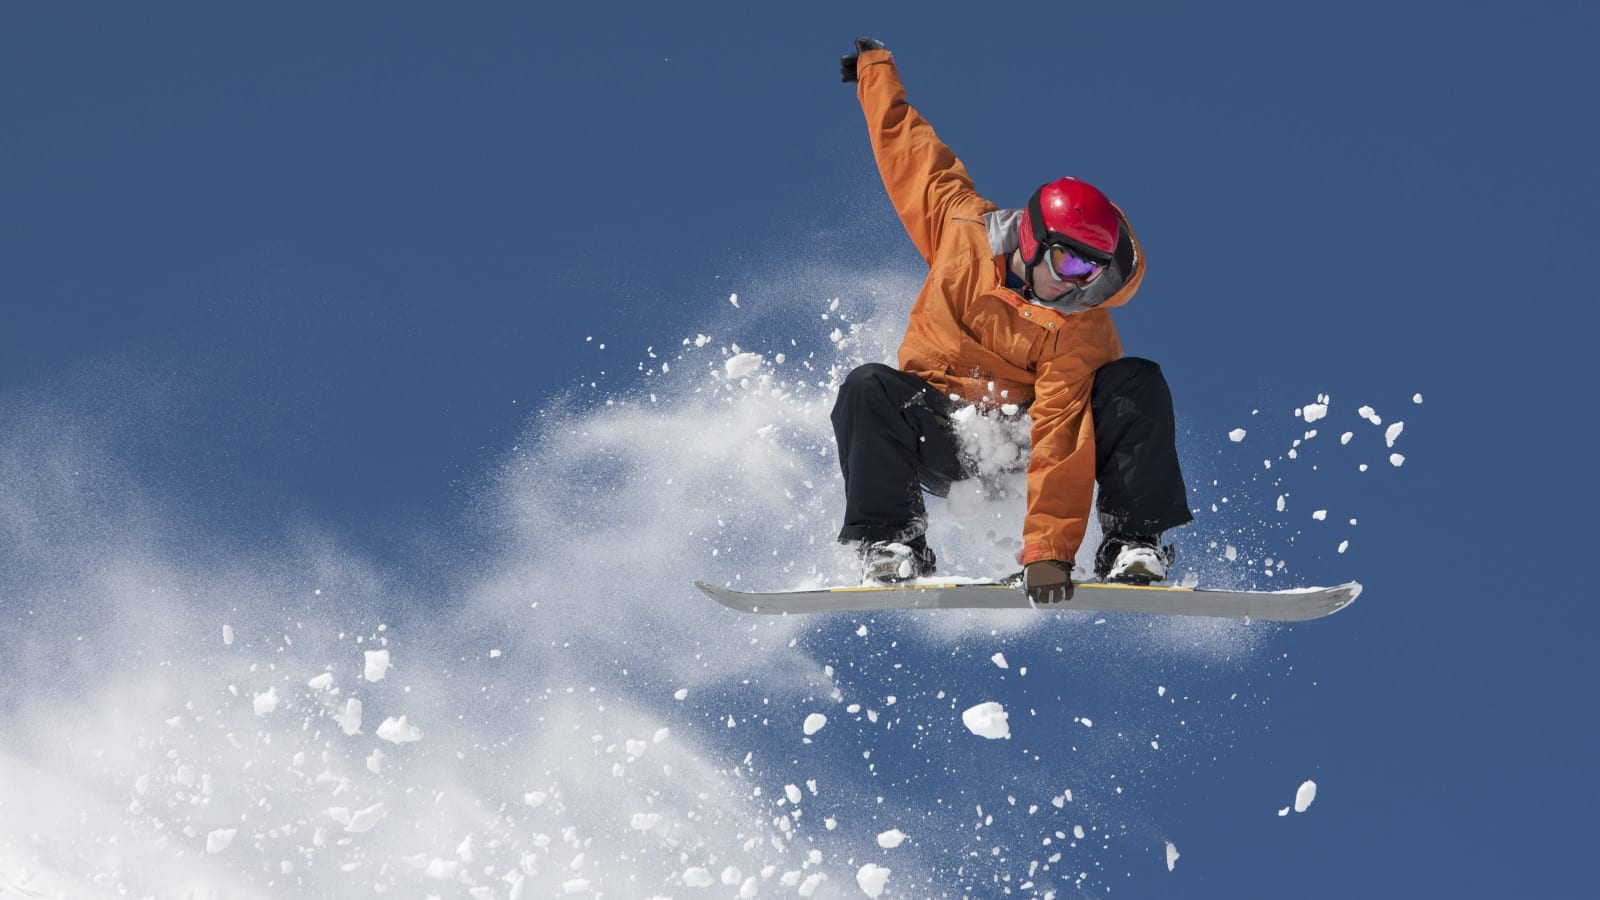 Young Man Flying Through The Air On A Snowboard Stock Photo